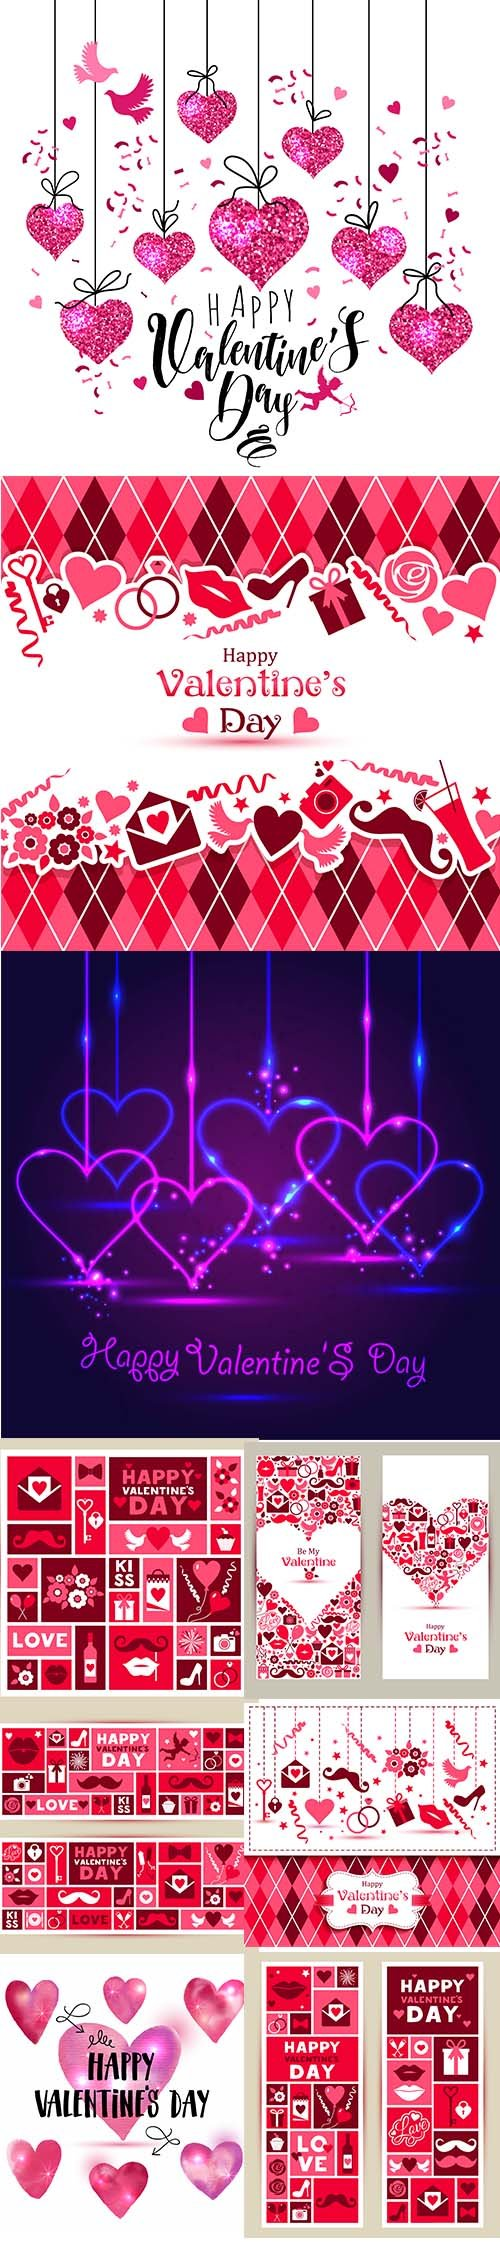 Set of Happy Valentines Day Vector Illustrations